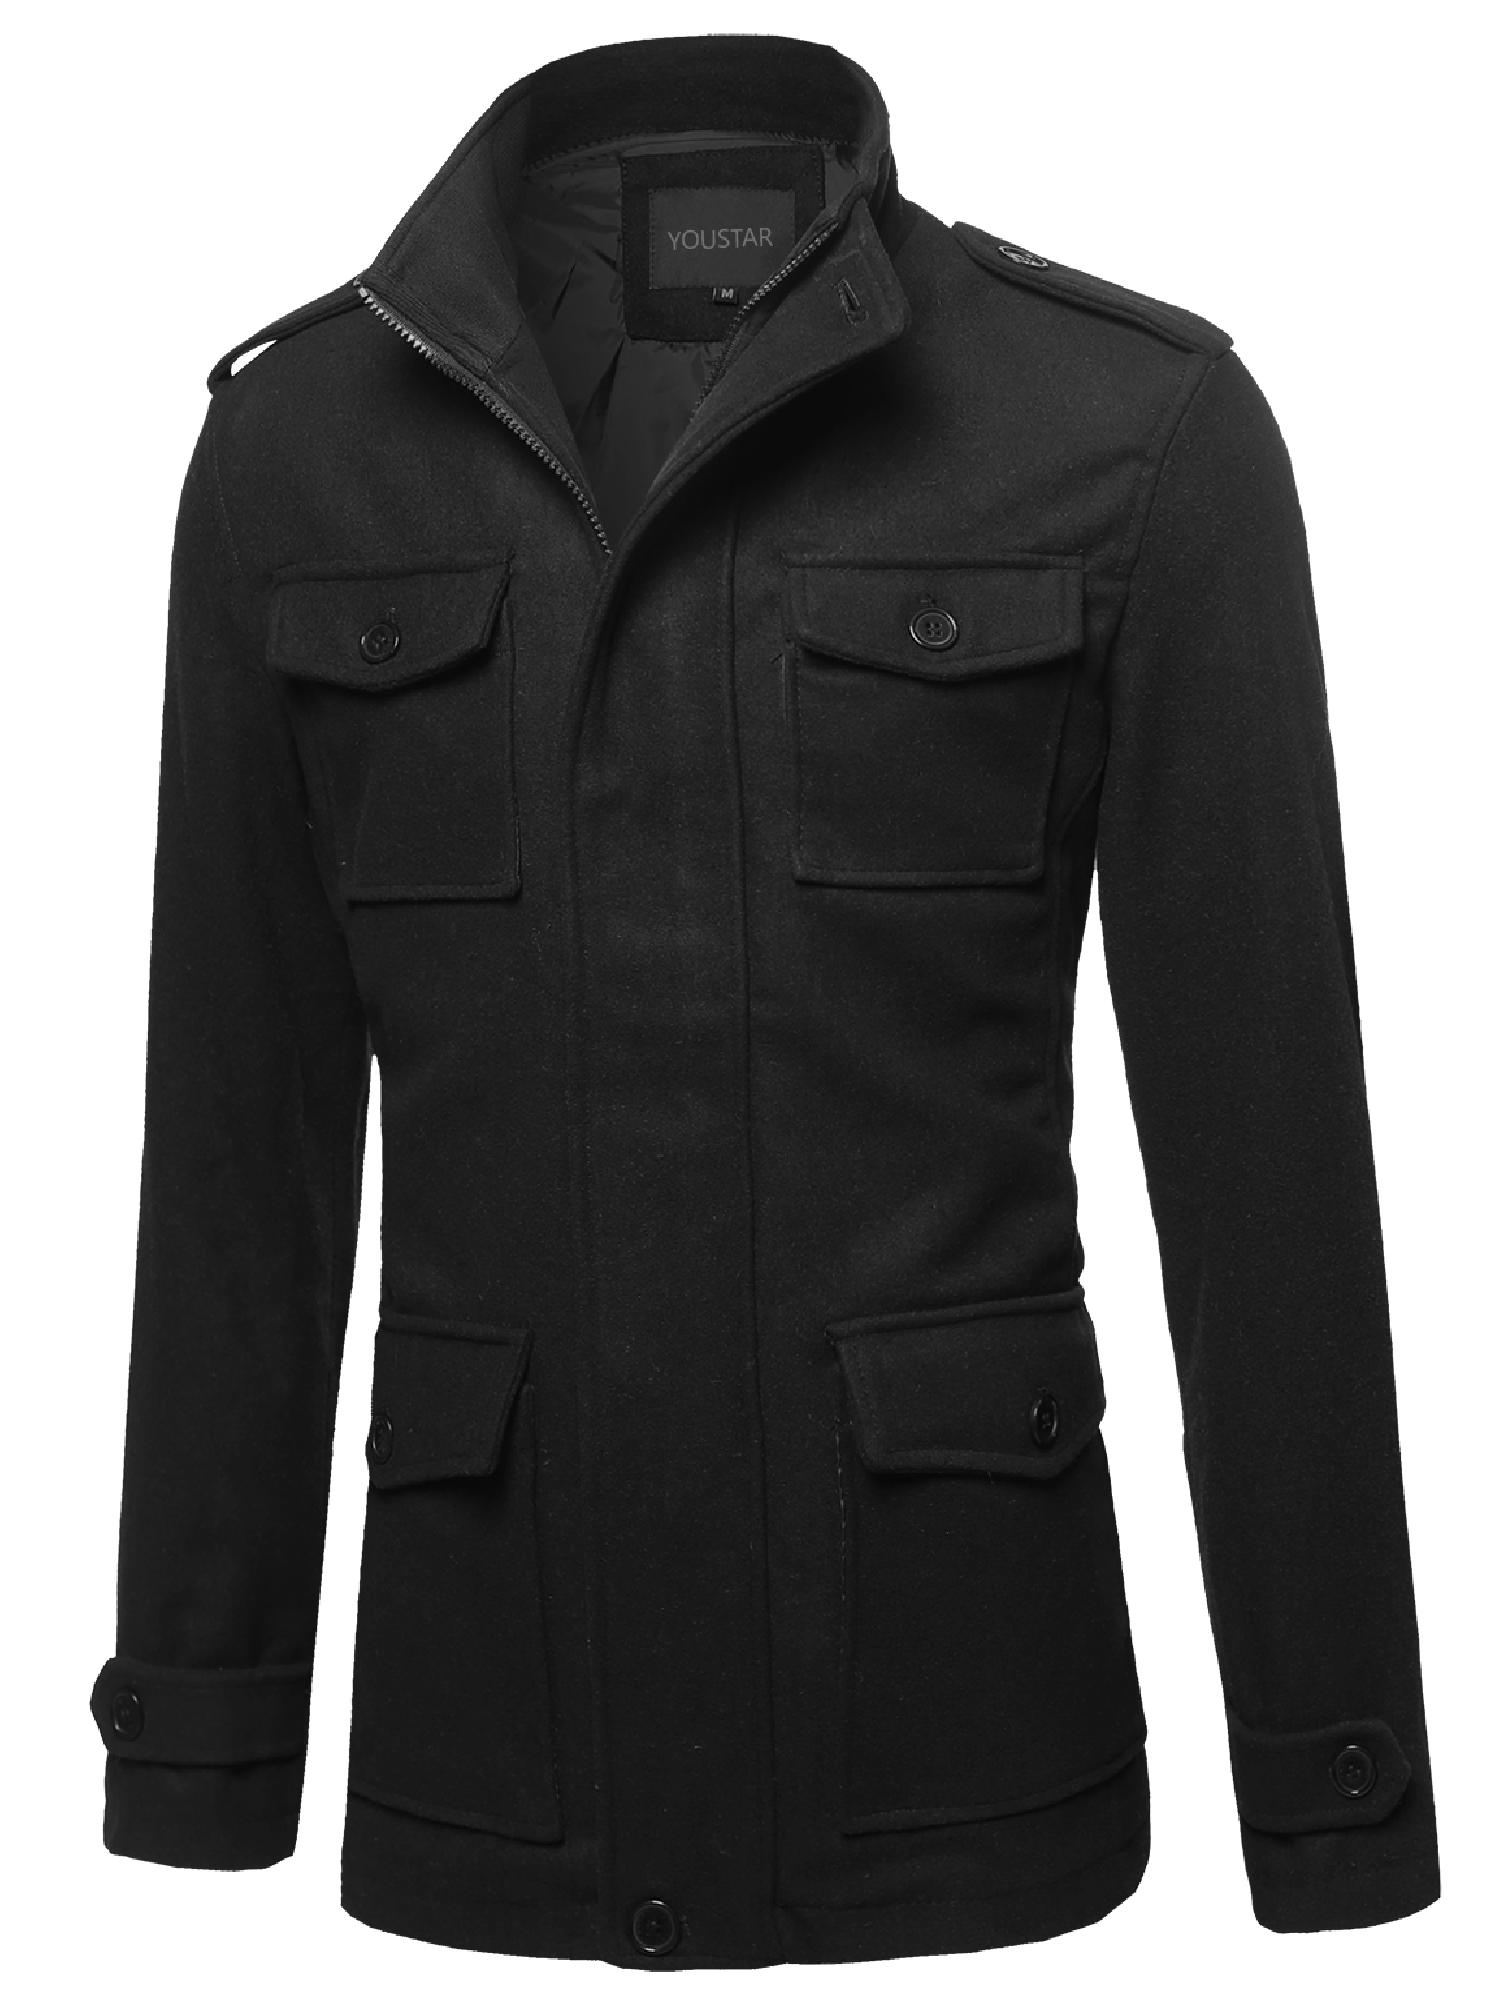 FashionOutfit Men's Classic Long Sleeves Zipper & Button Closure Wool Blend Coat by